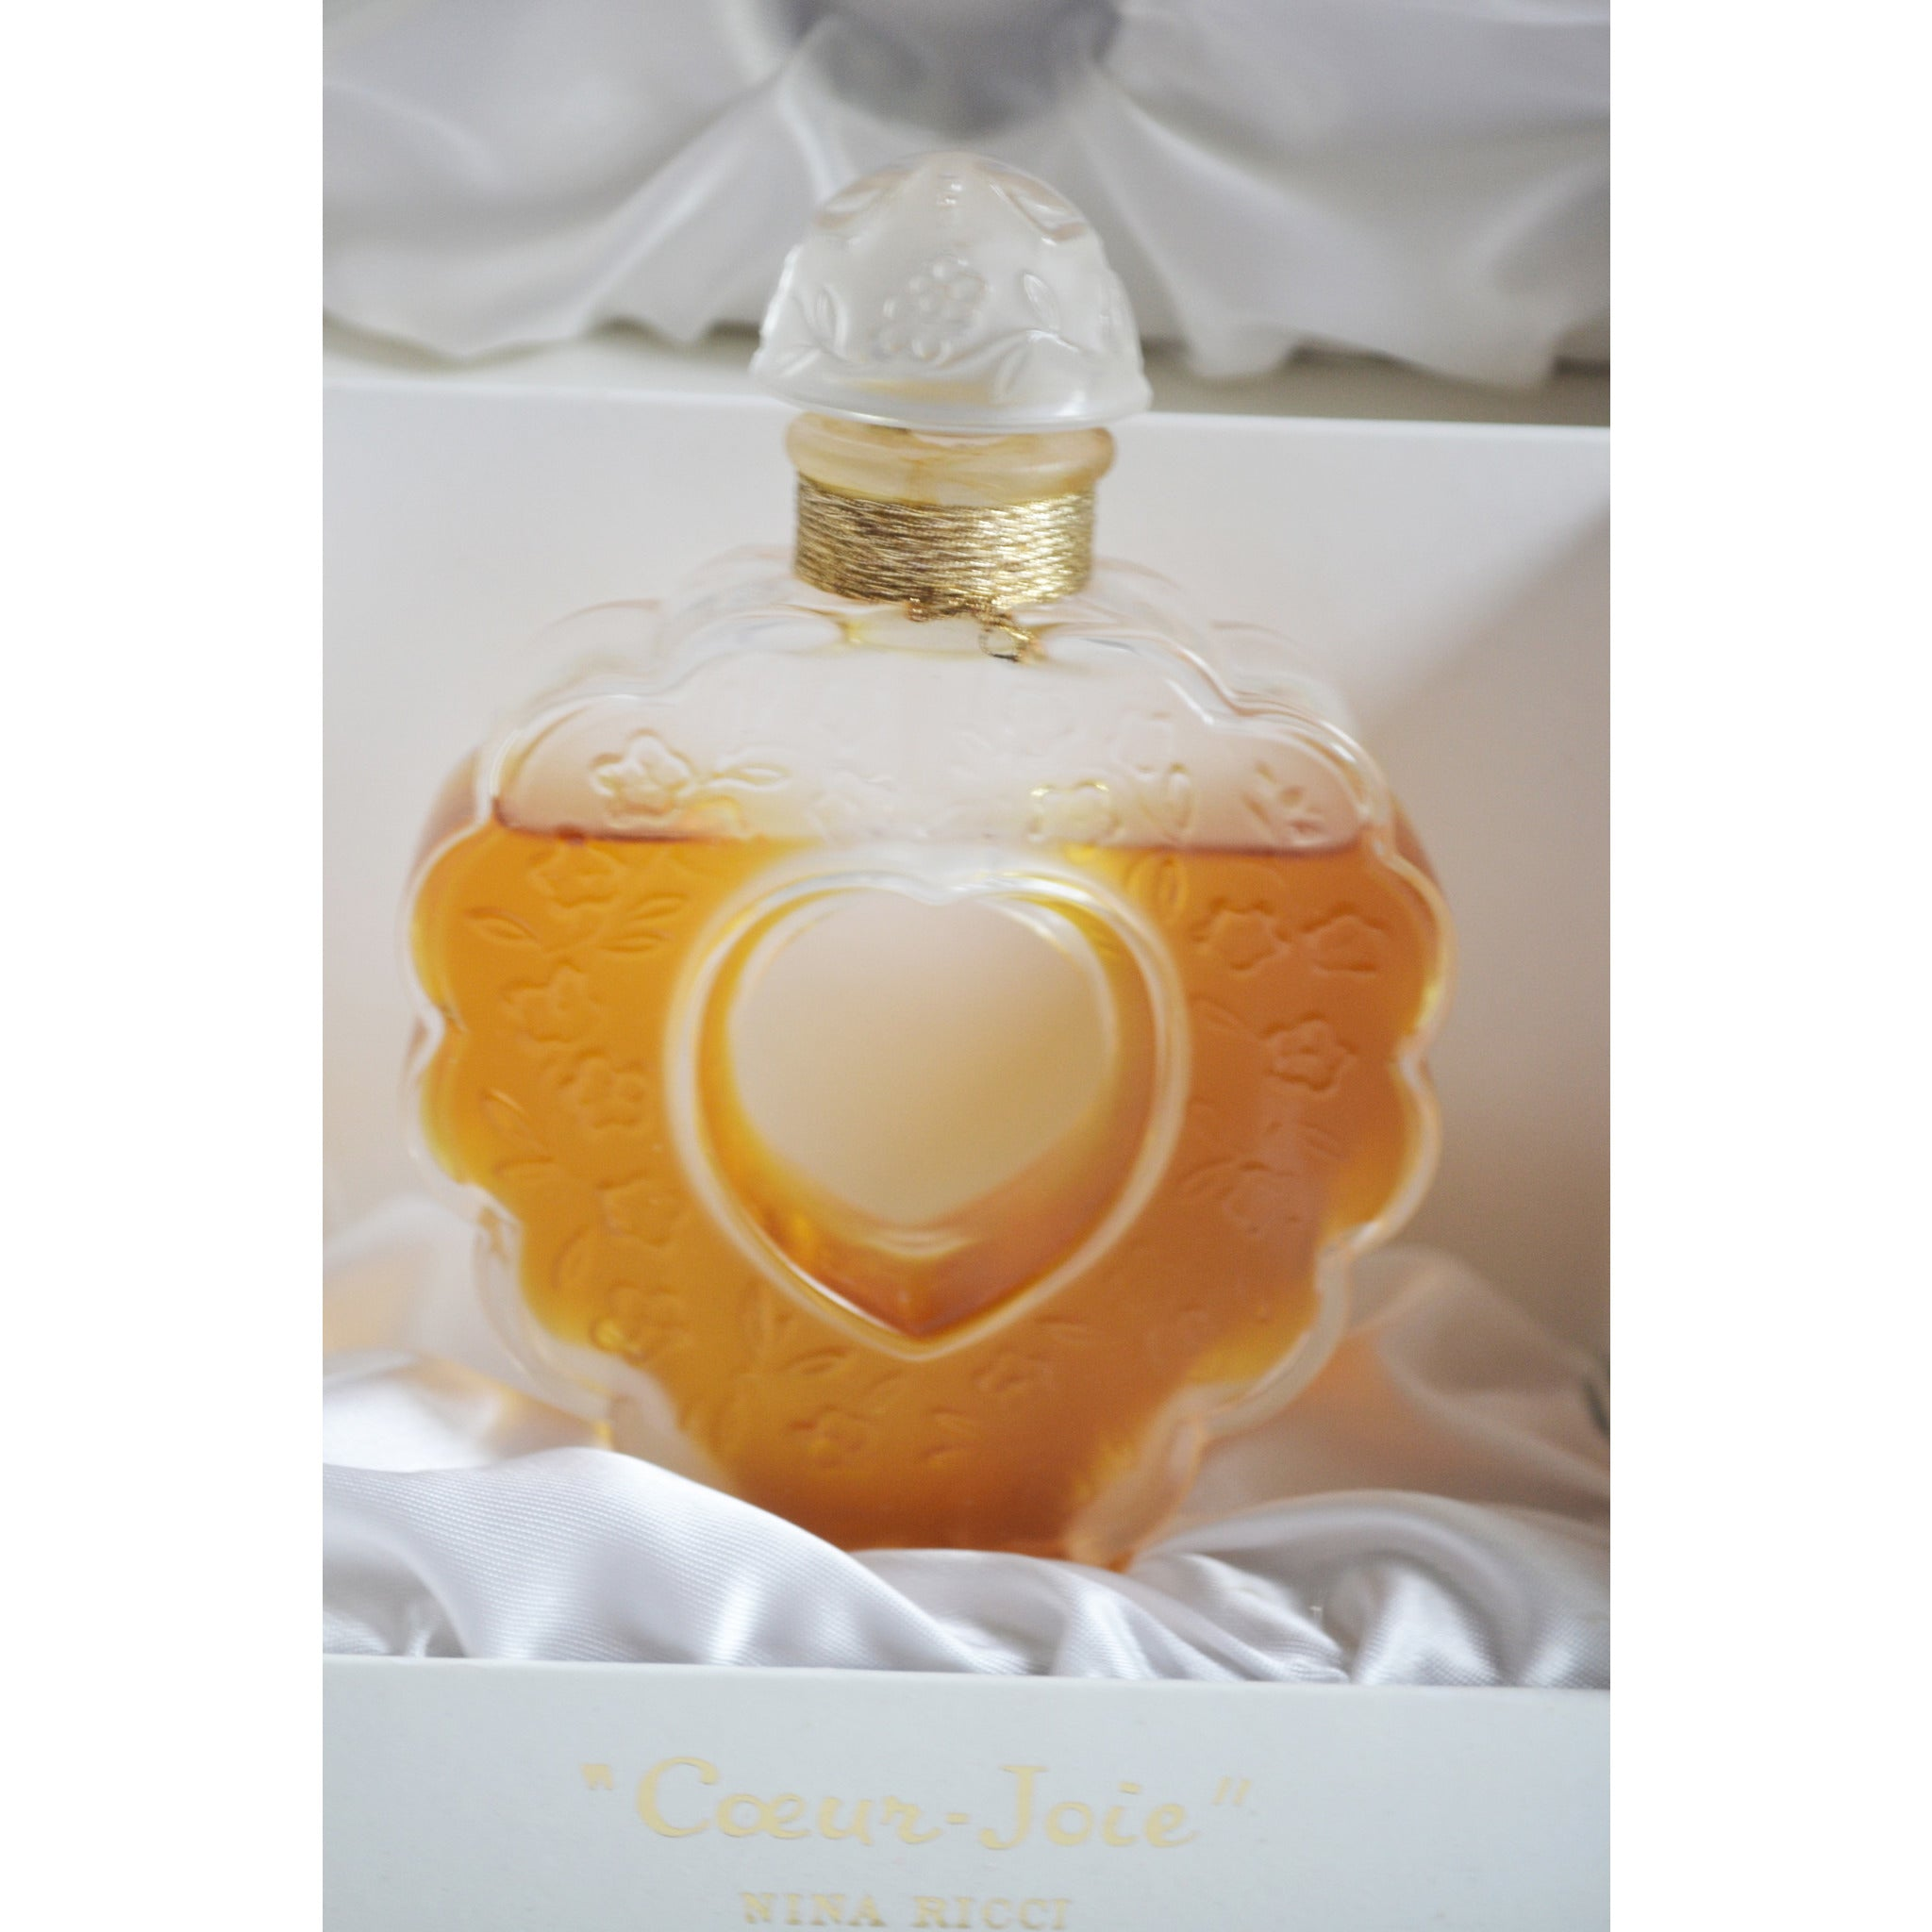 Vintage Coeur Perfume Lalique Bottle By Nina Ricci